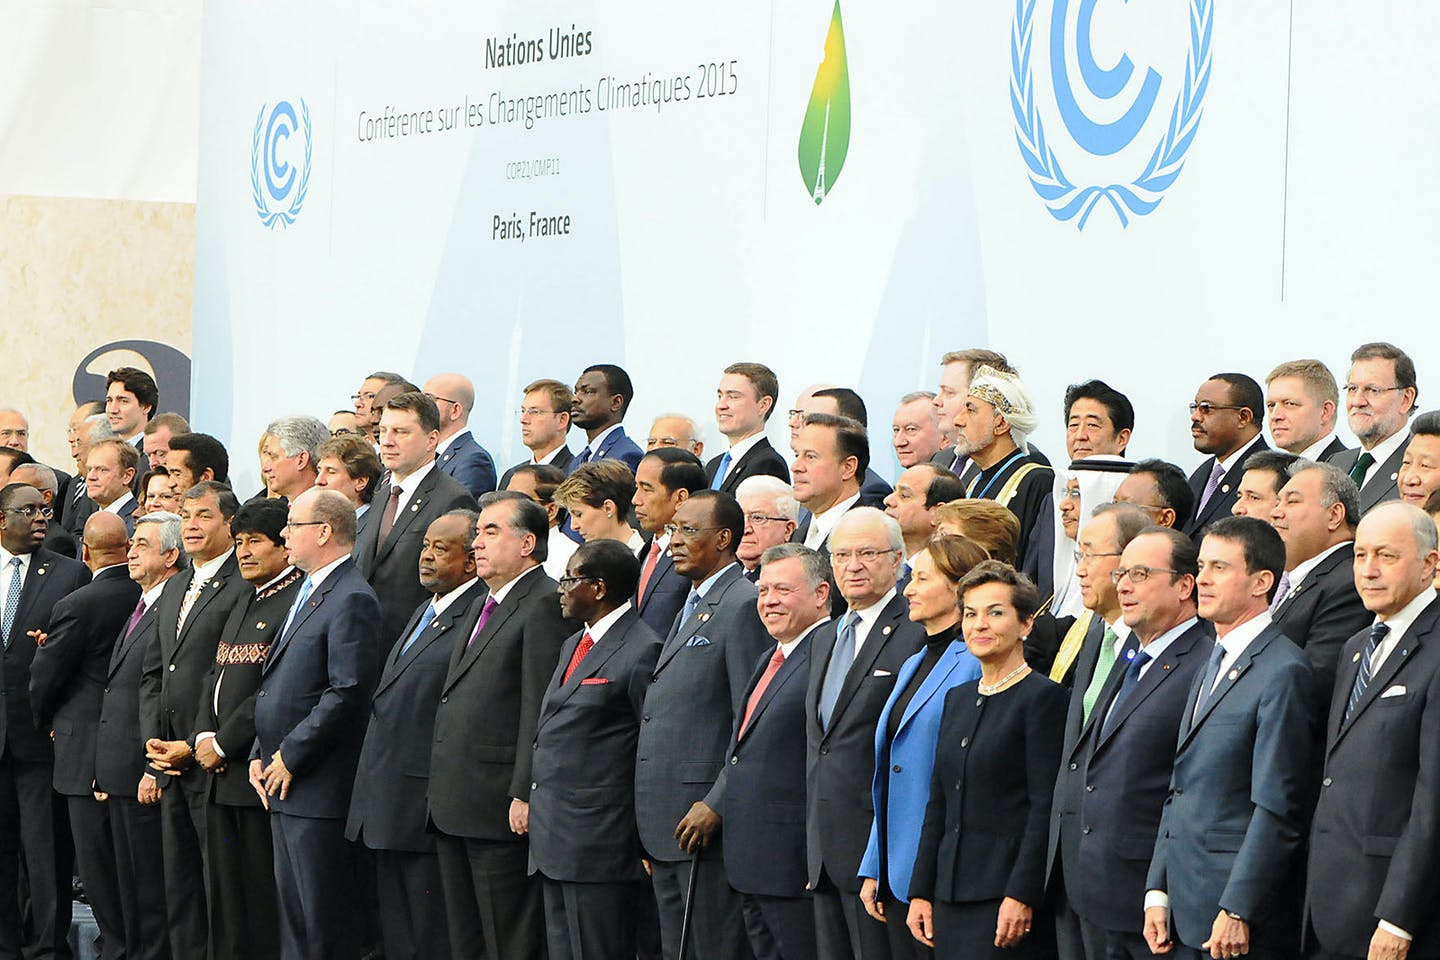 UN world leaders family photo